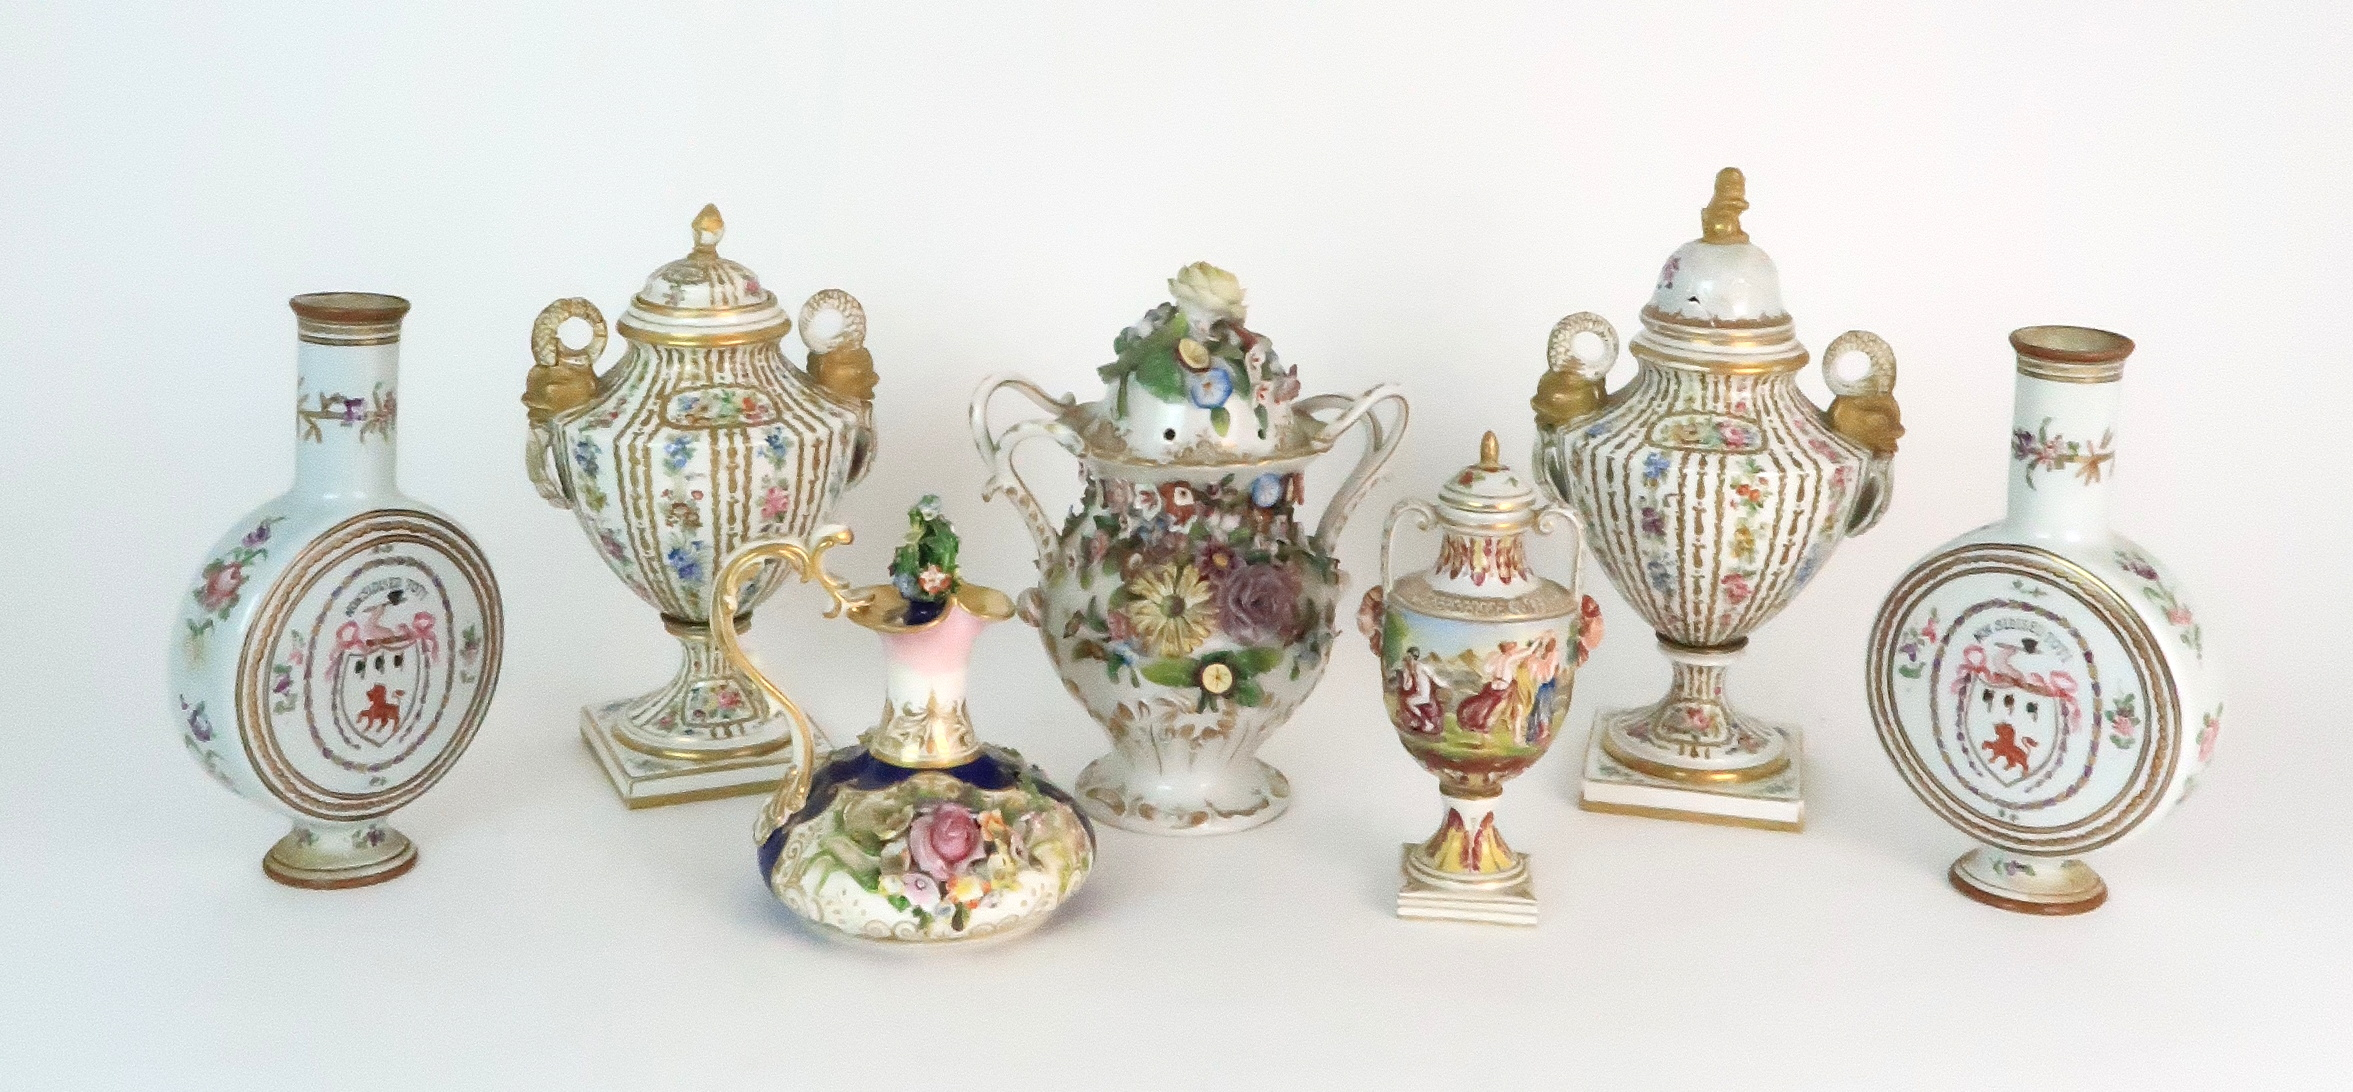 A PAIR OF CONTINENTAL PORCELAIN URNS each decorated with strings of flowers and gilt dot and dash